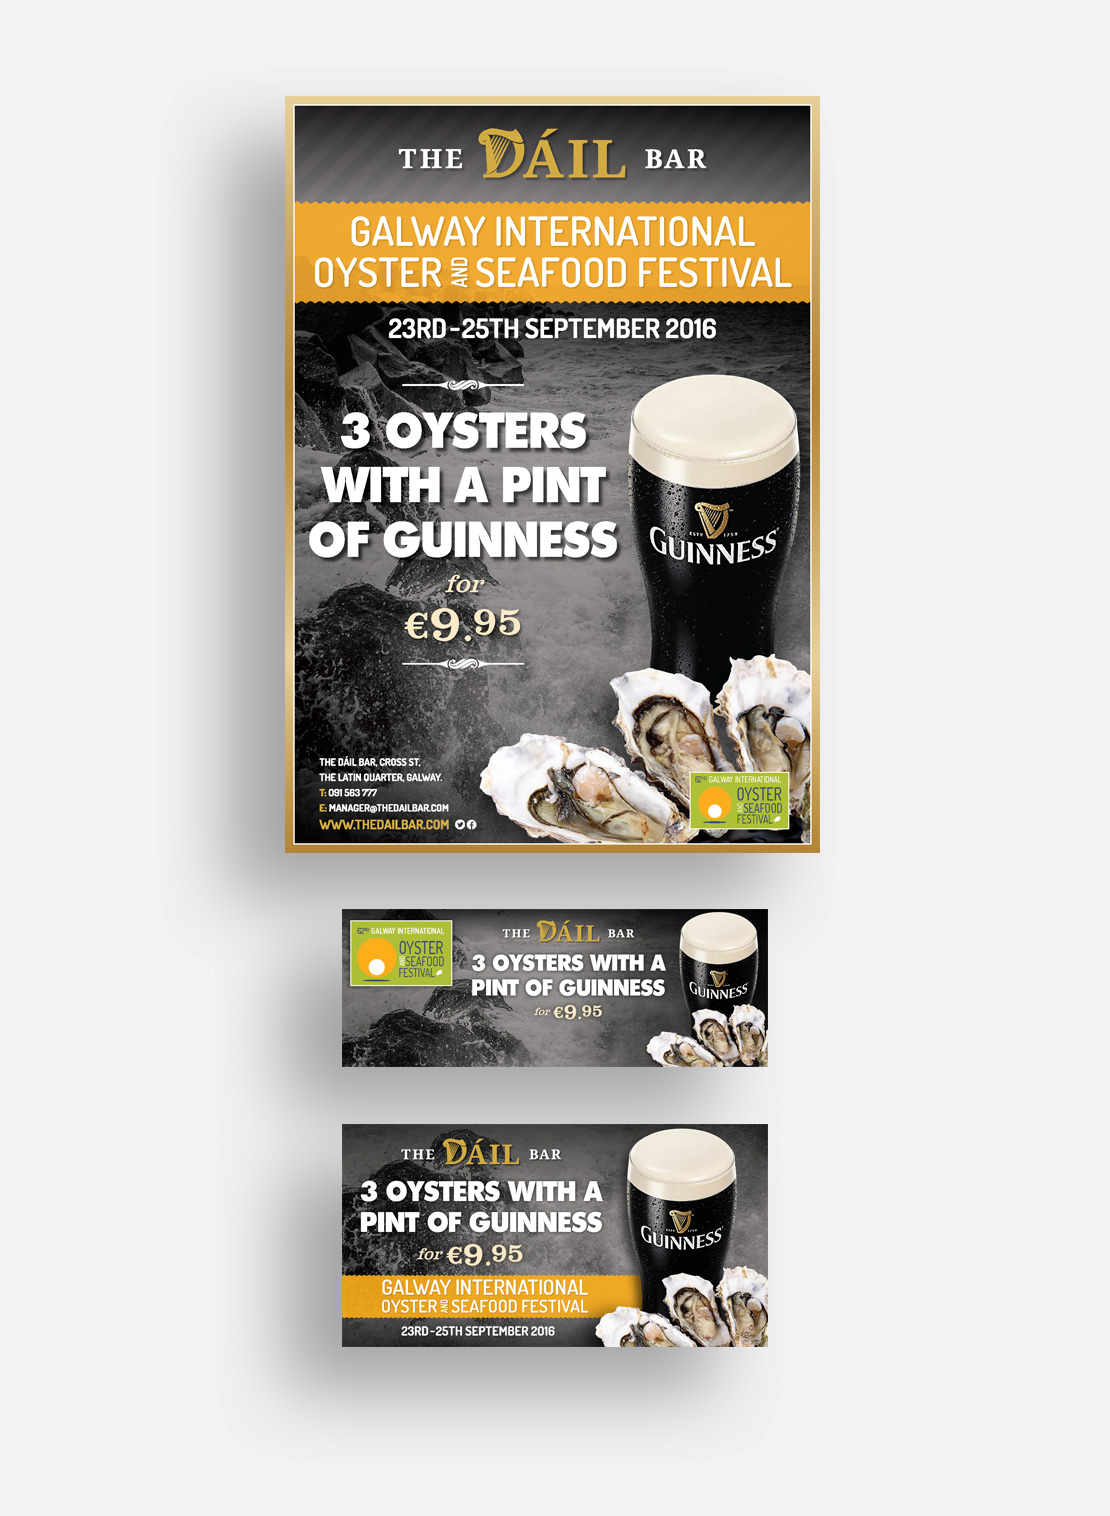 The Dáil Bar 2016 Galway Oyster Festival promotions